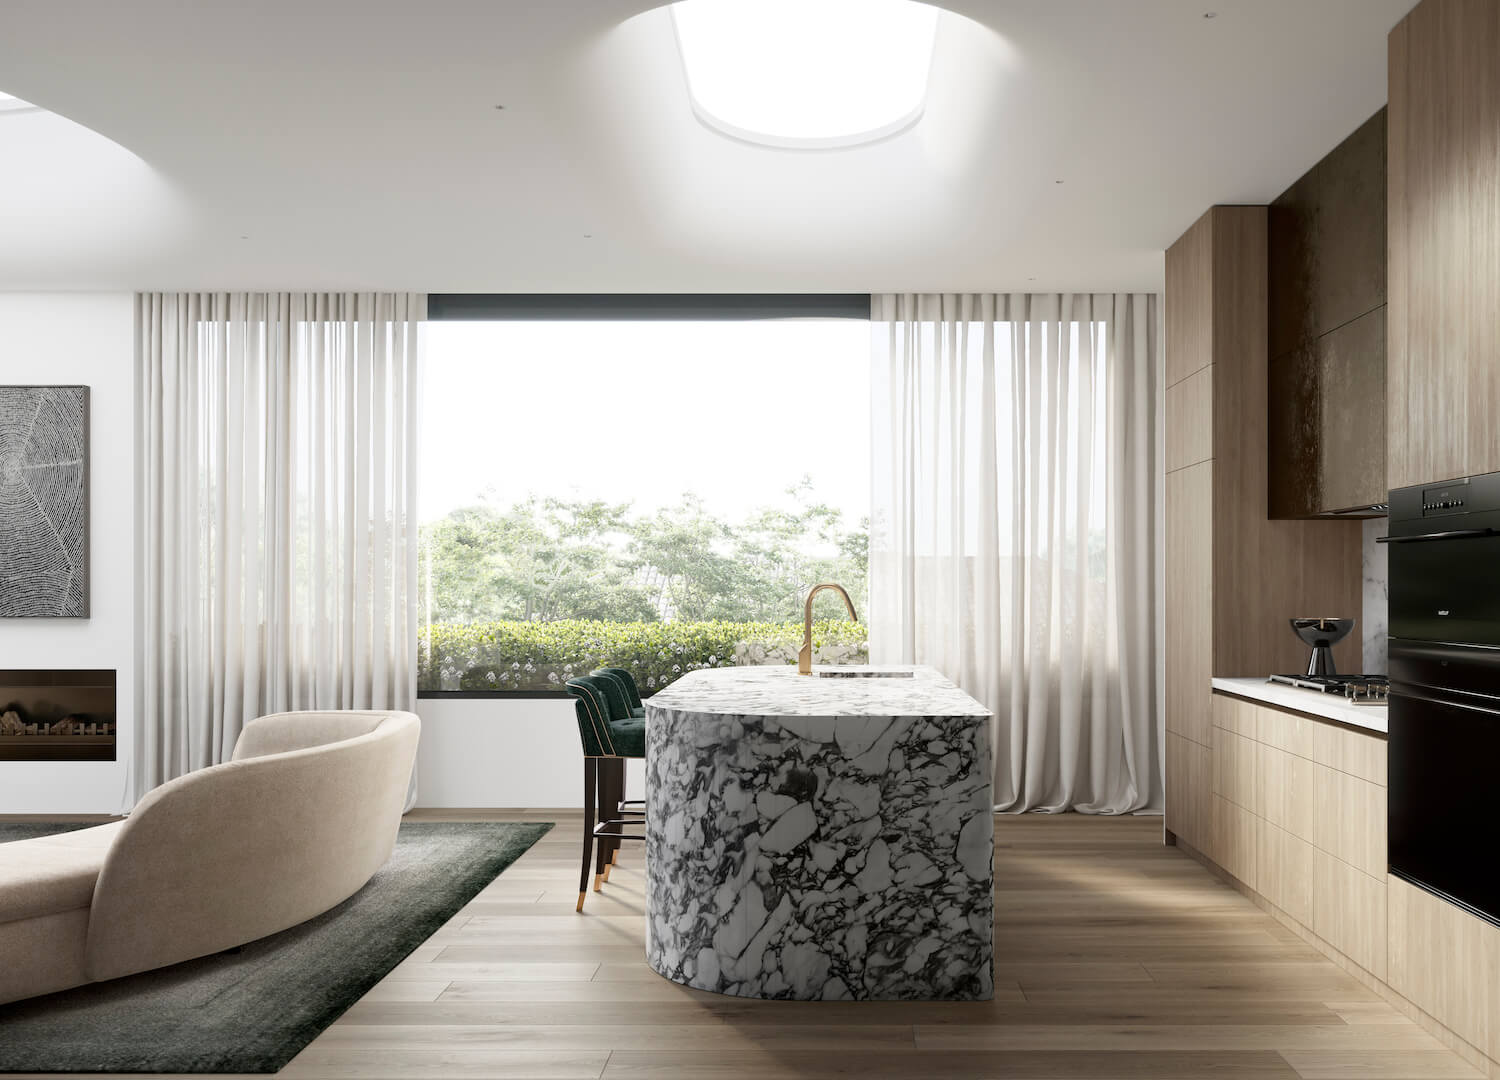 est living open house the botanic collection kurneh place 02